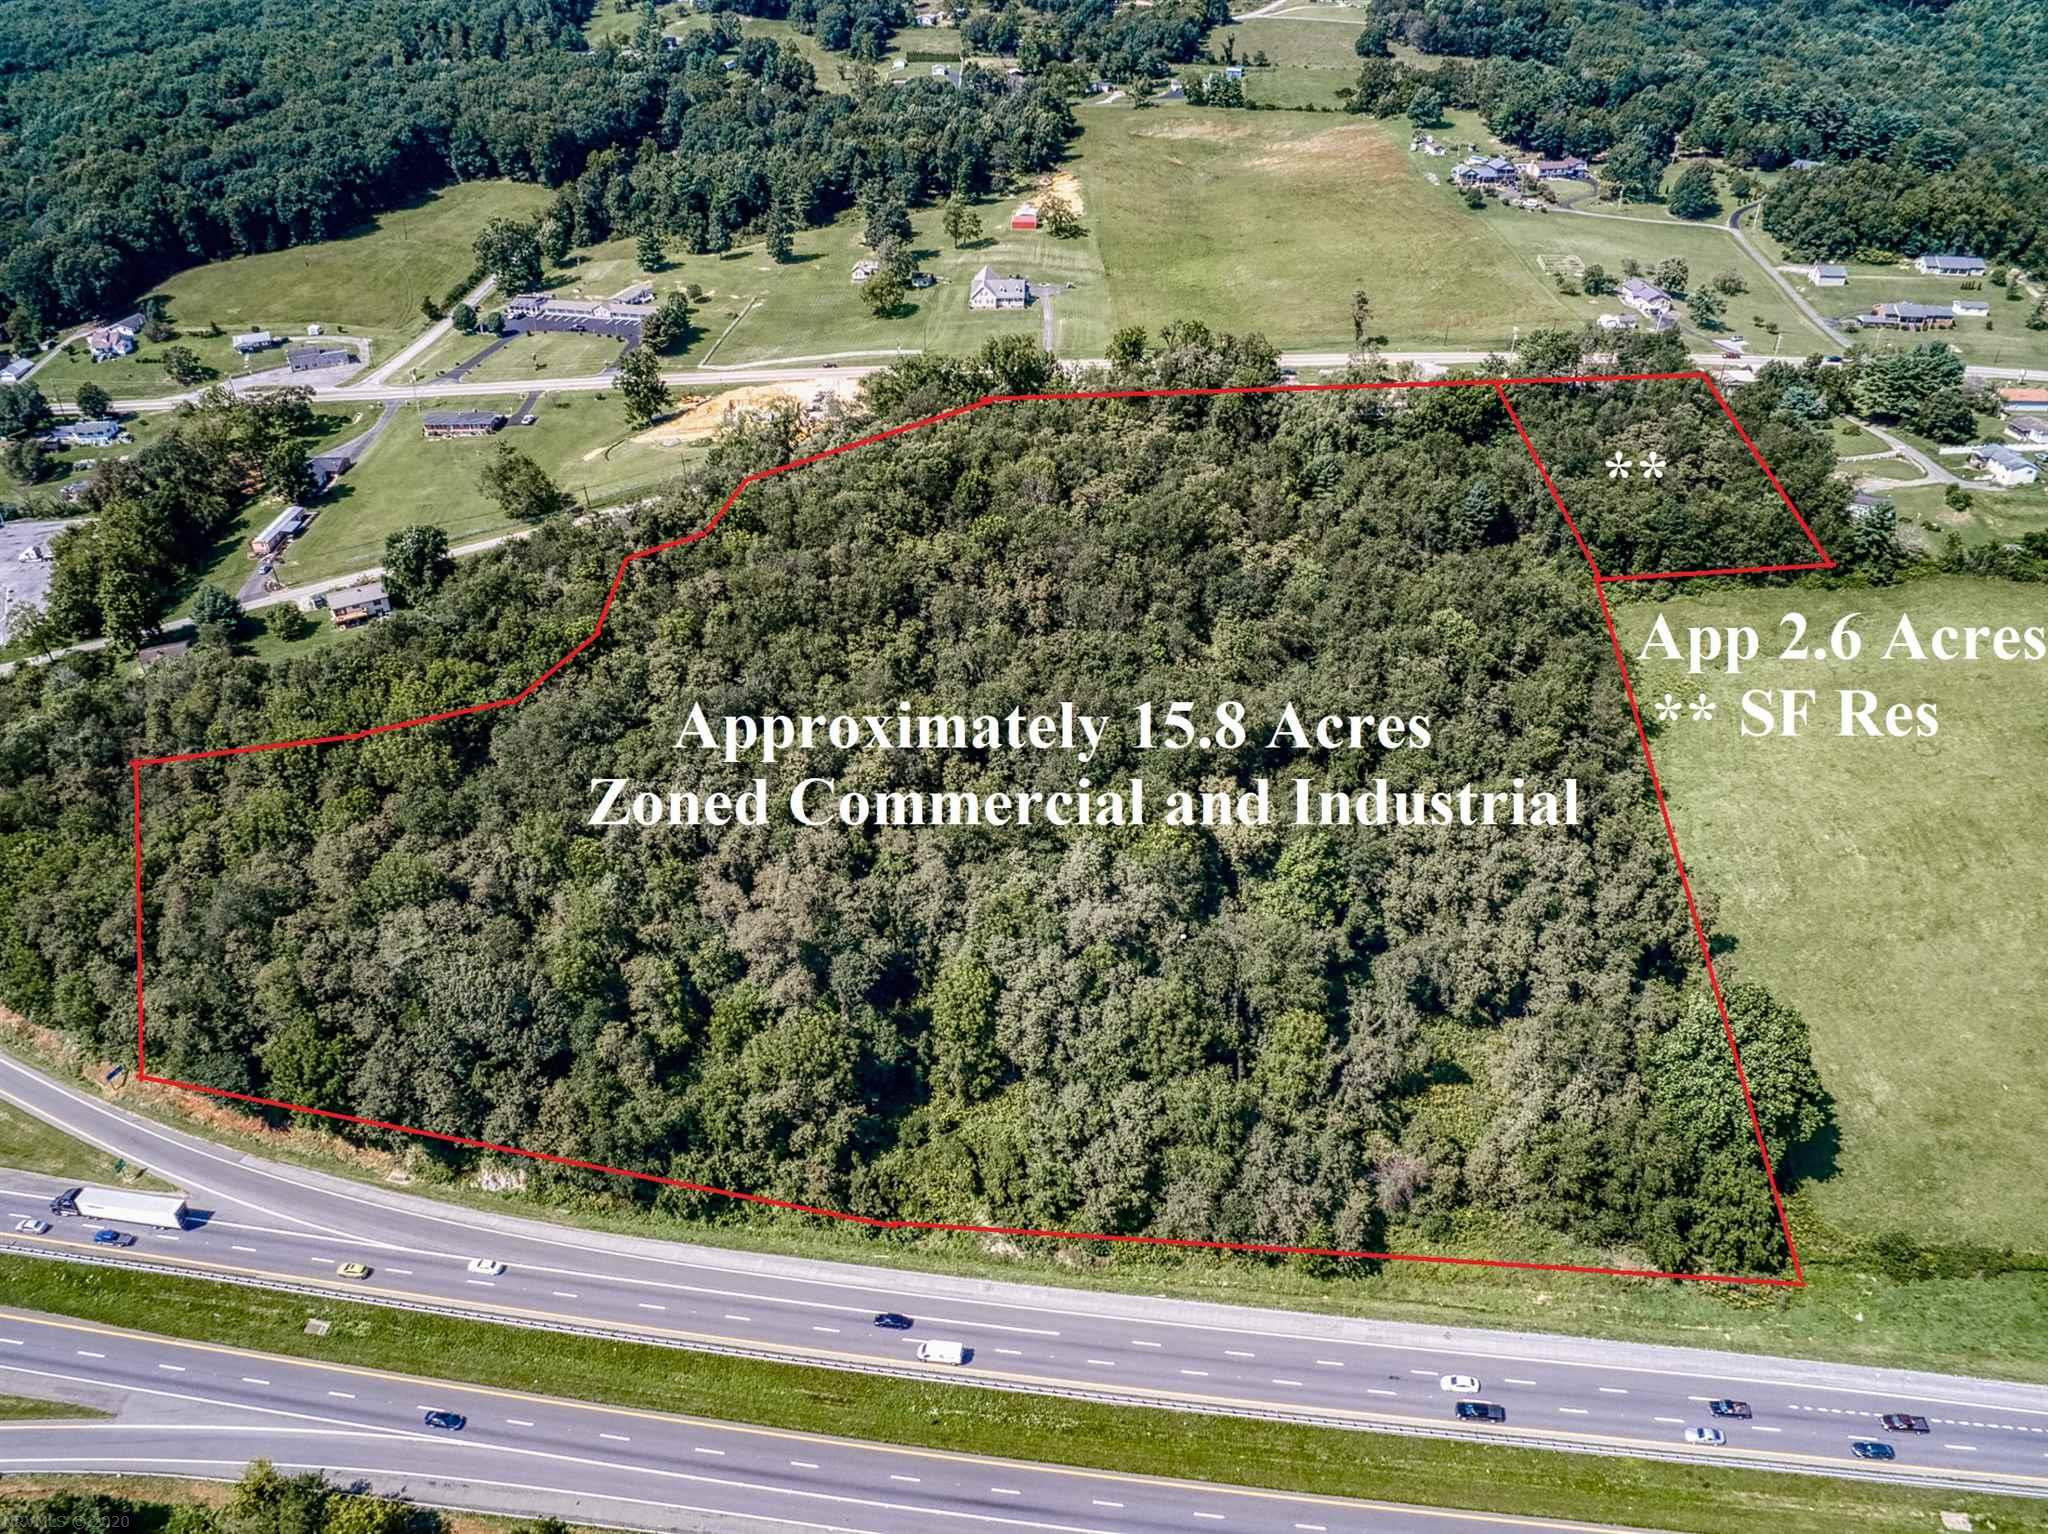 First time available! This easy-access and high-visibility property adjacent to I-81 is just off exit 84 with close proximity to a busy established truck stop.  With approximately 18.4 acres fronting on two access roads, the possibilities are endless.  The bulk of the property is zoned Commercial and Industrial, which presents opportunities in hospitality, retail, services and much more!  Public utilities available.